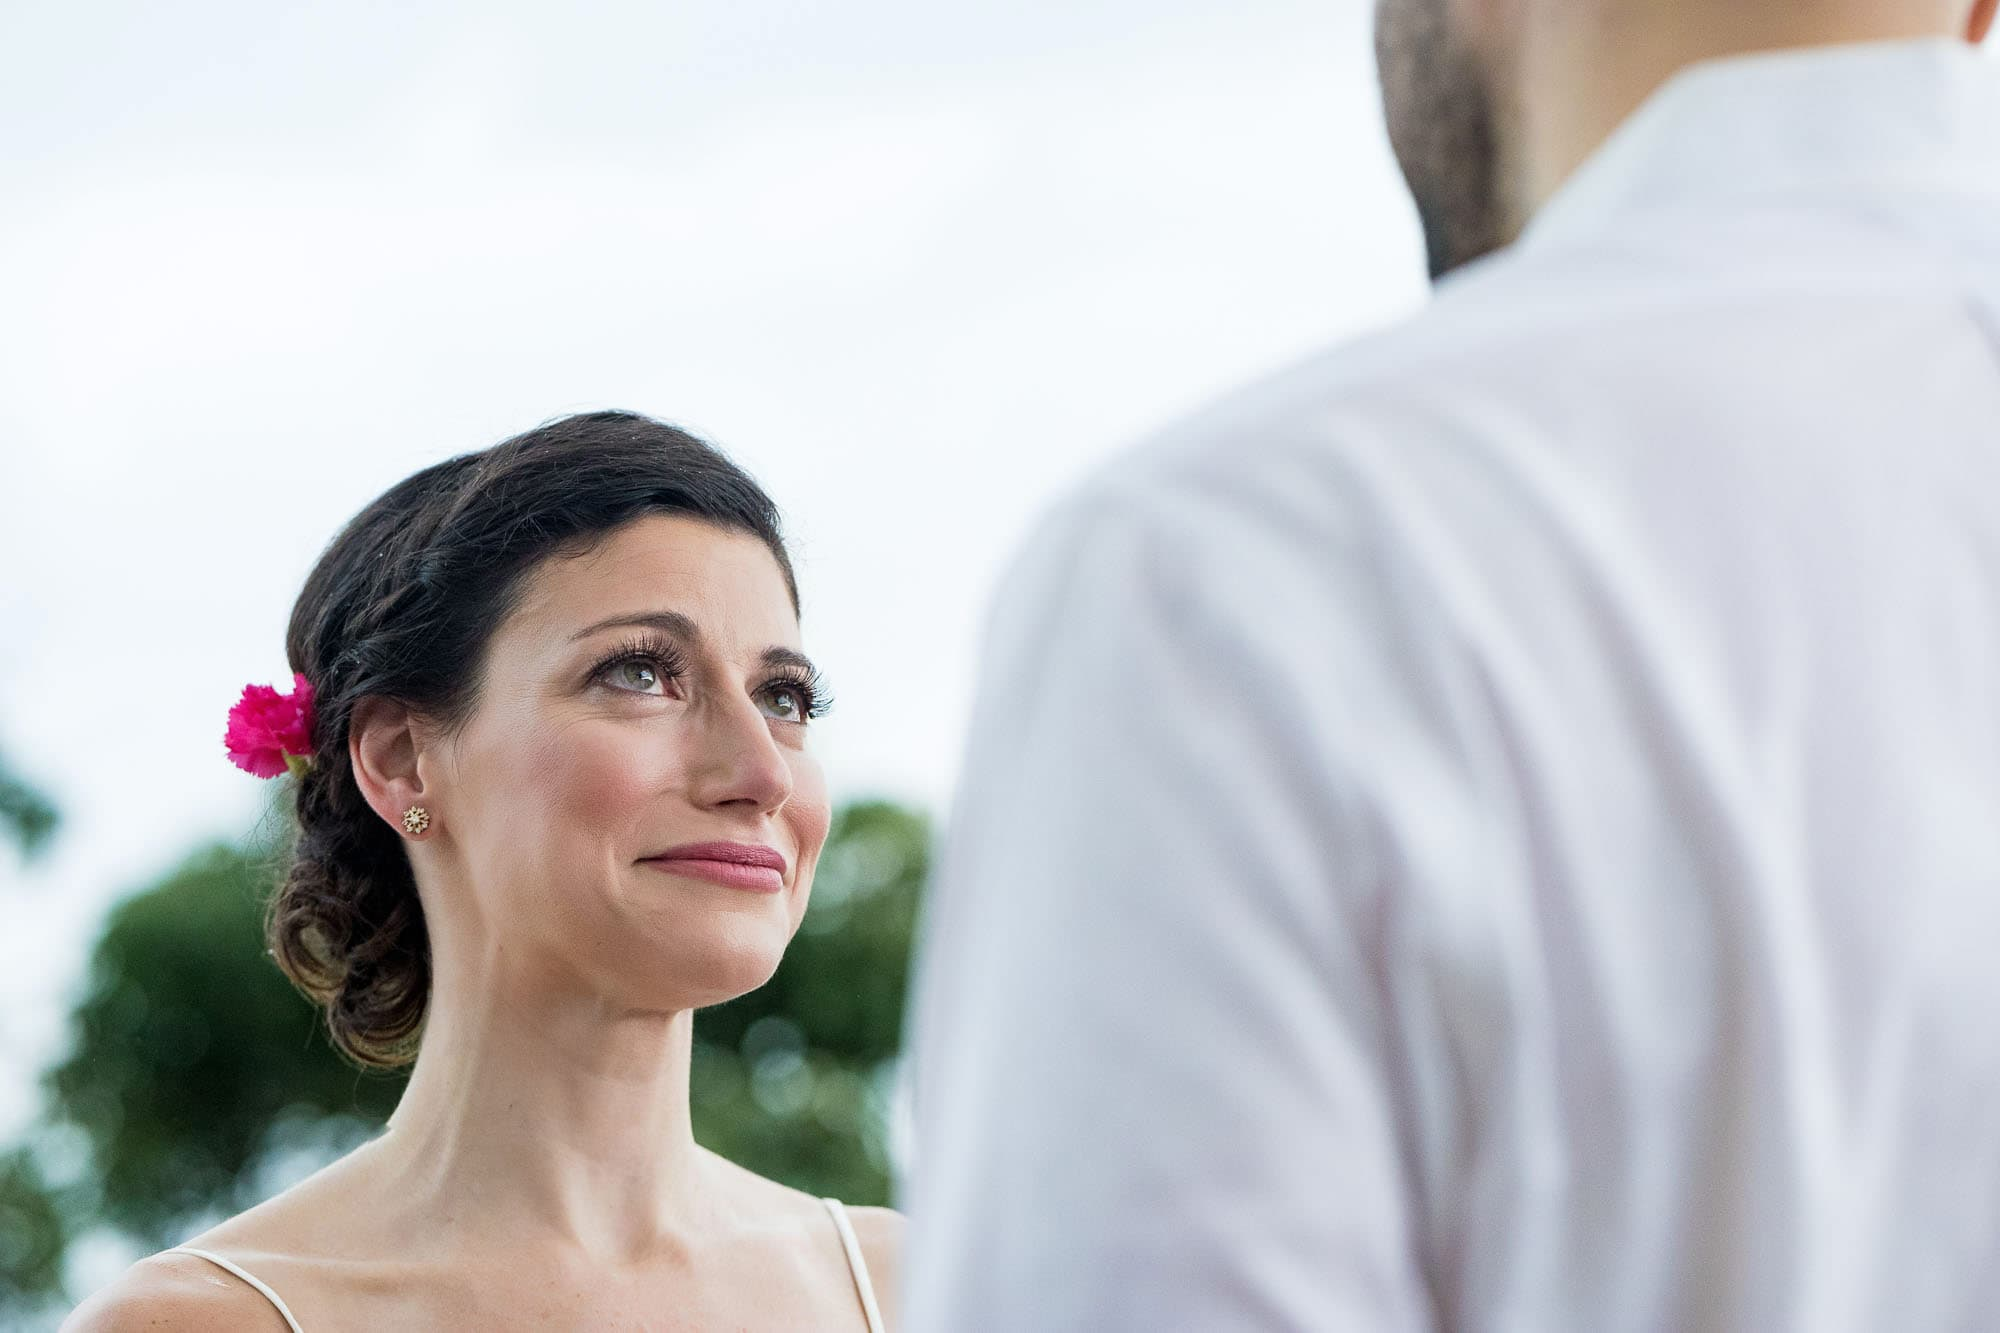 A poignant moment registers on the bride's face during the costa rica elopement ceremony